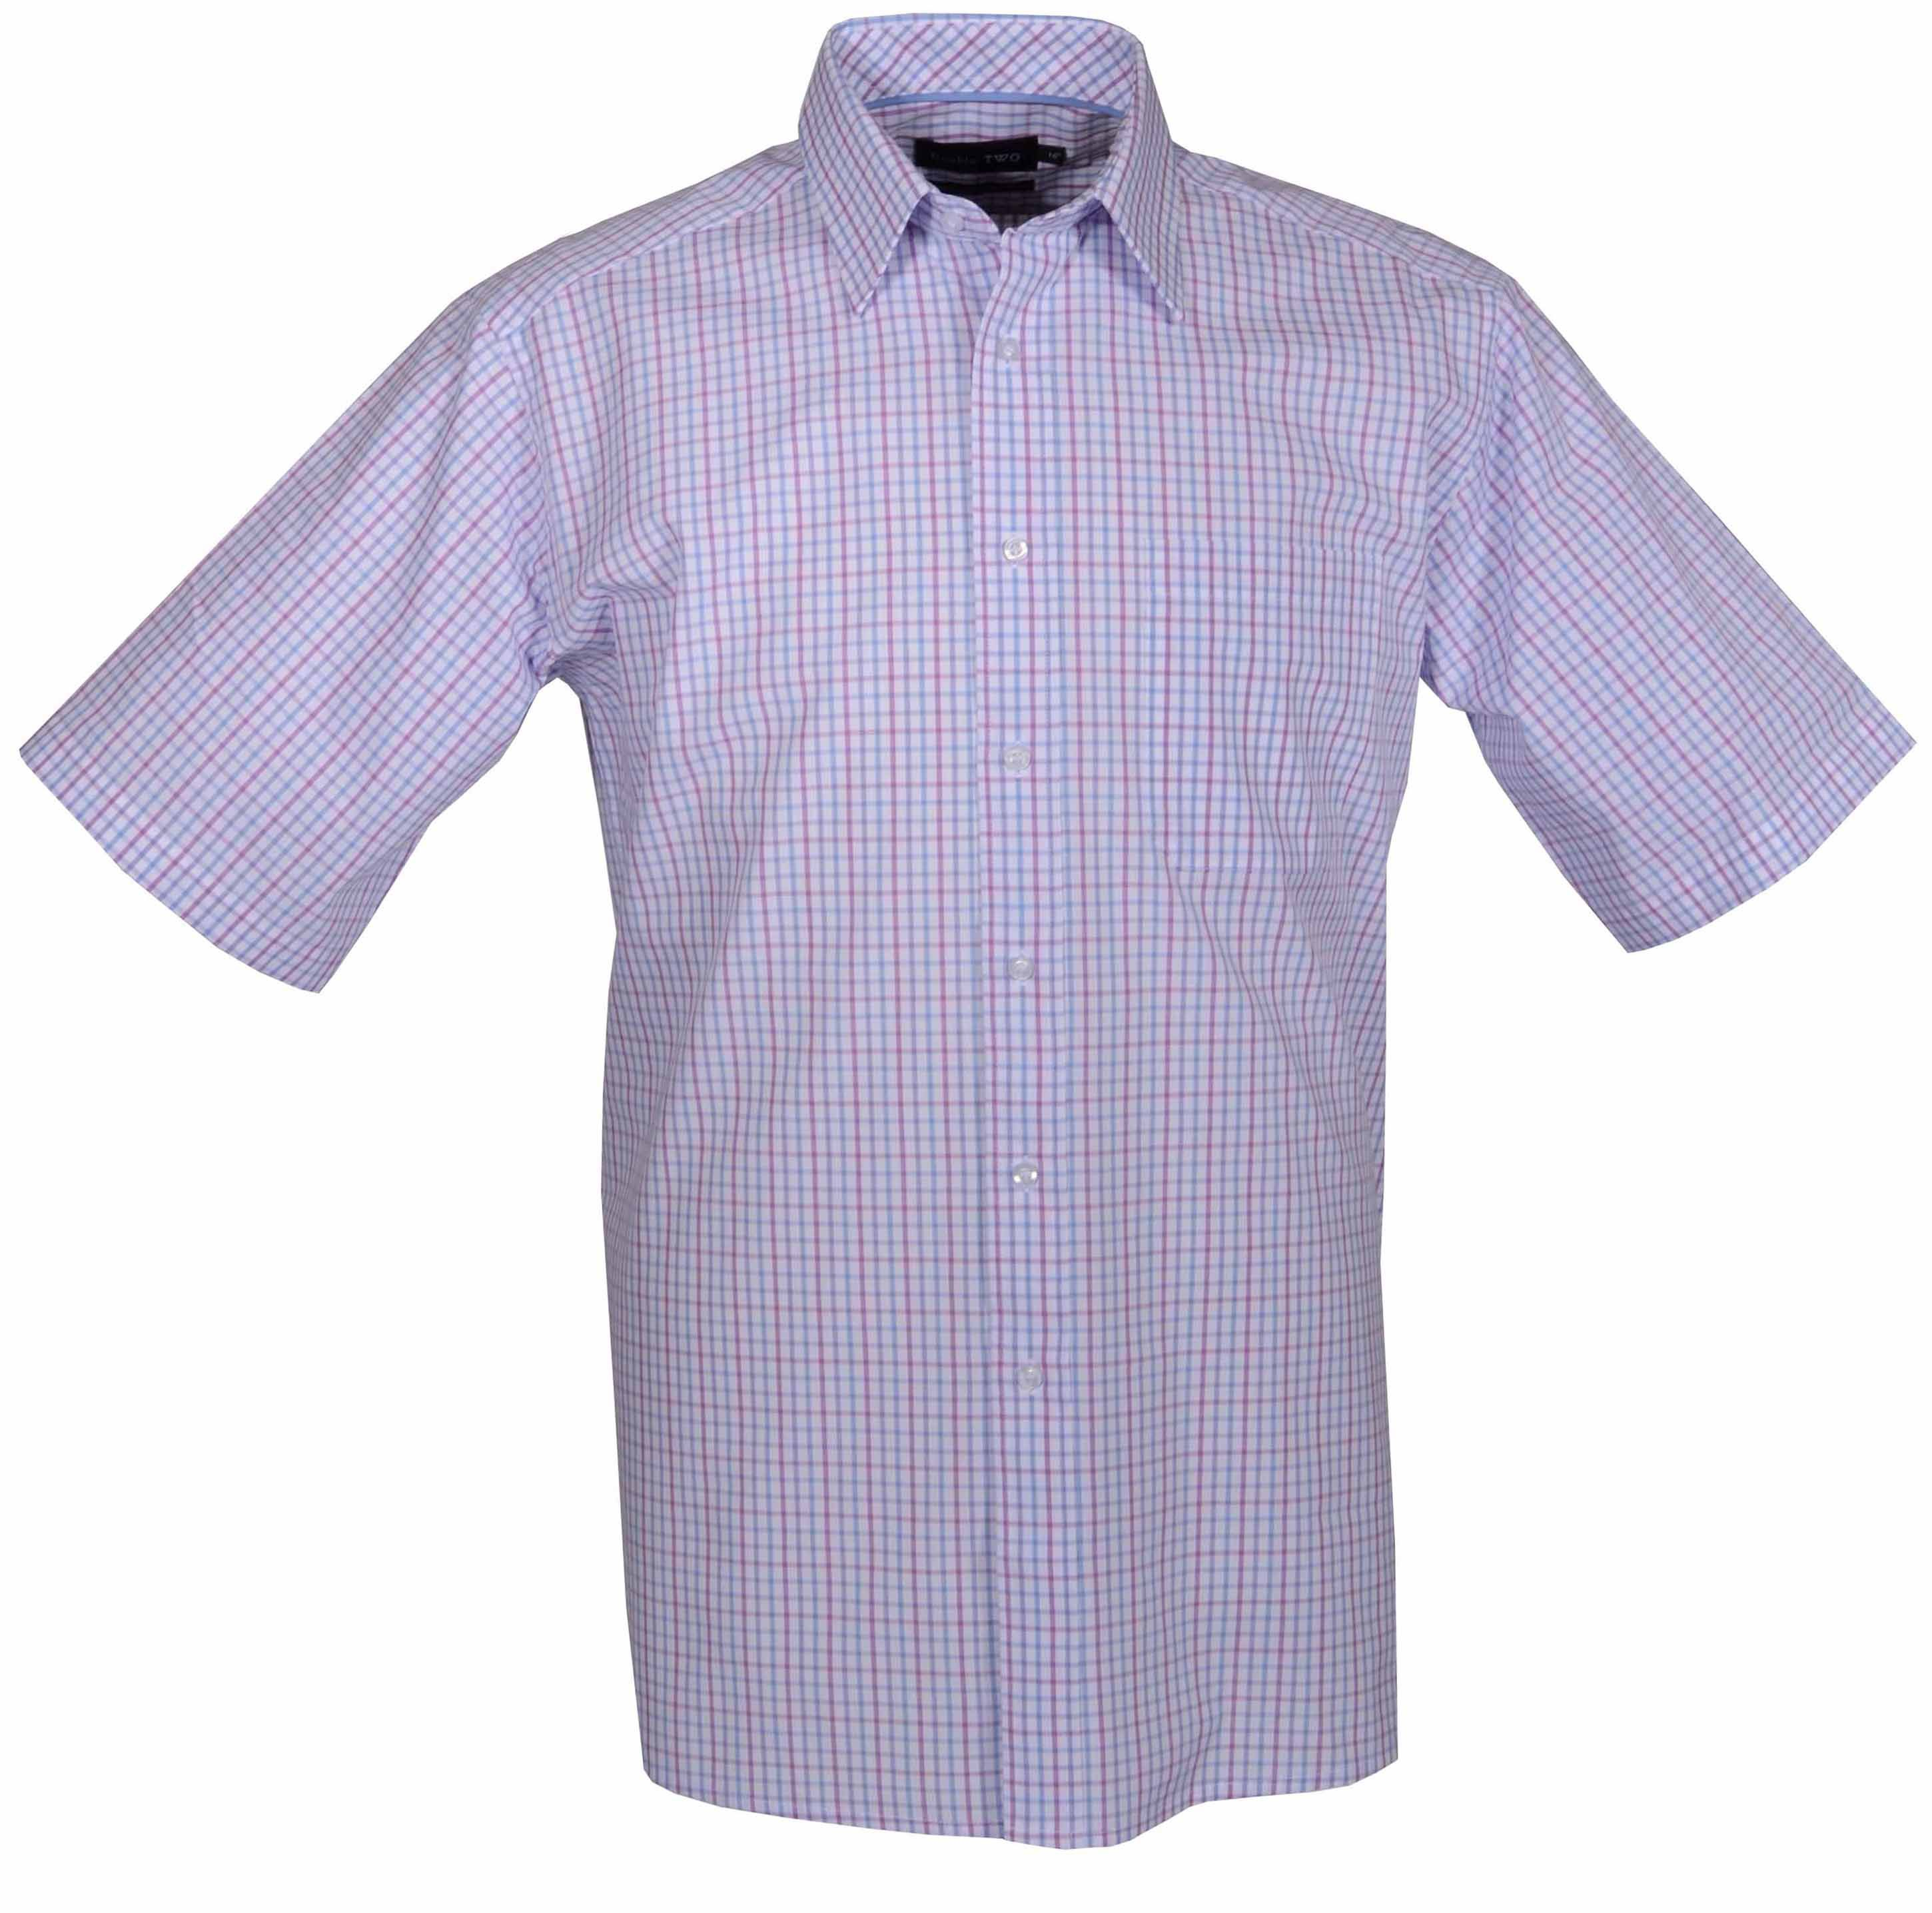 King size 100% cotton formal shirt